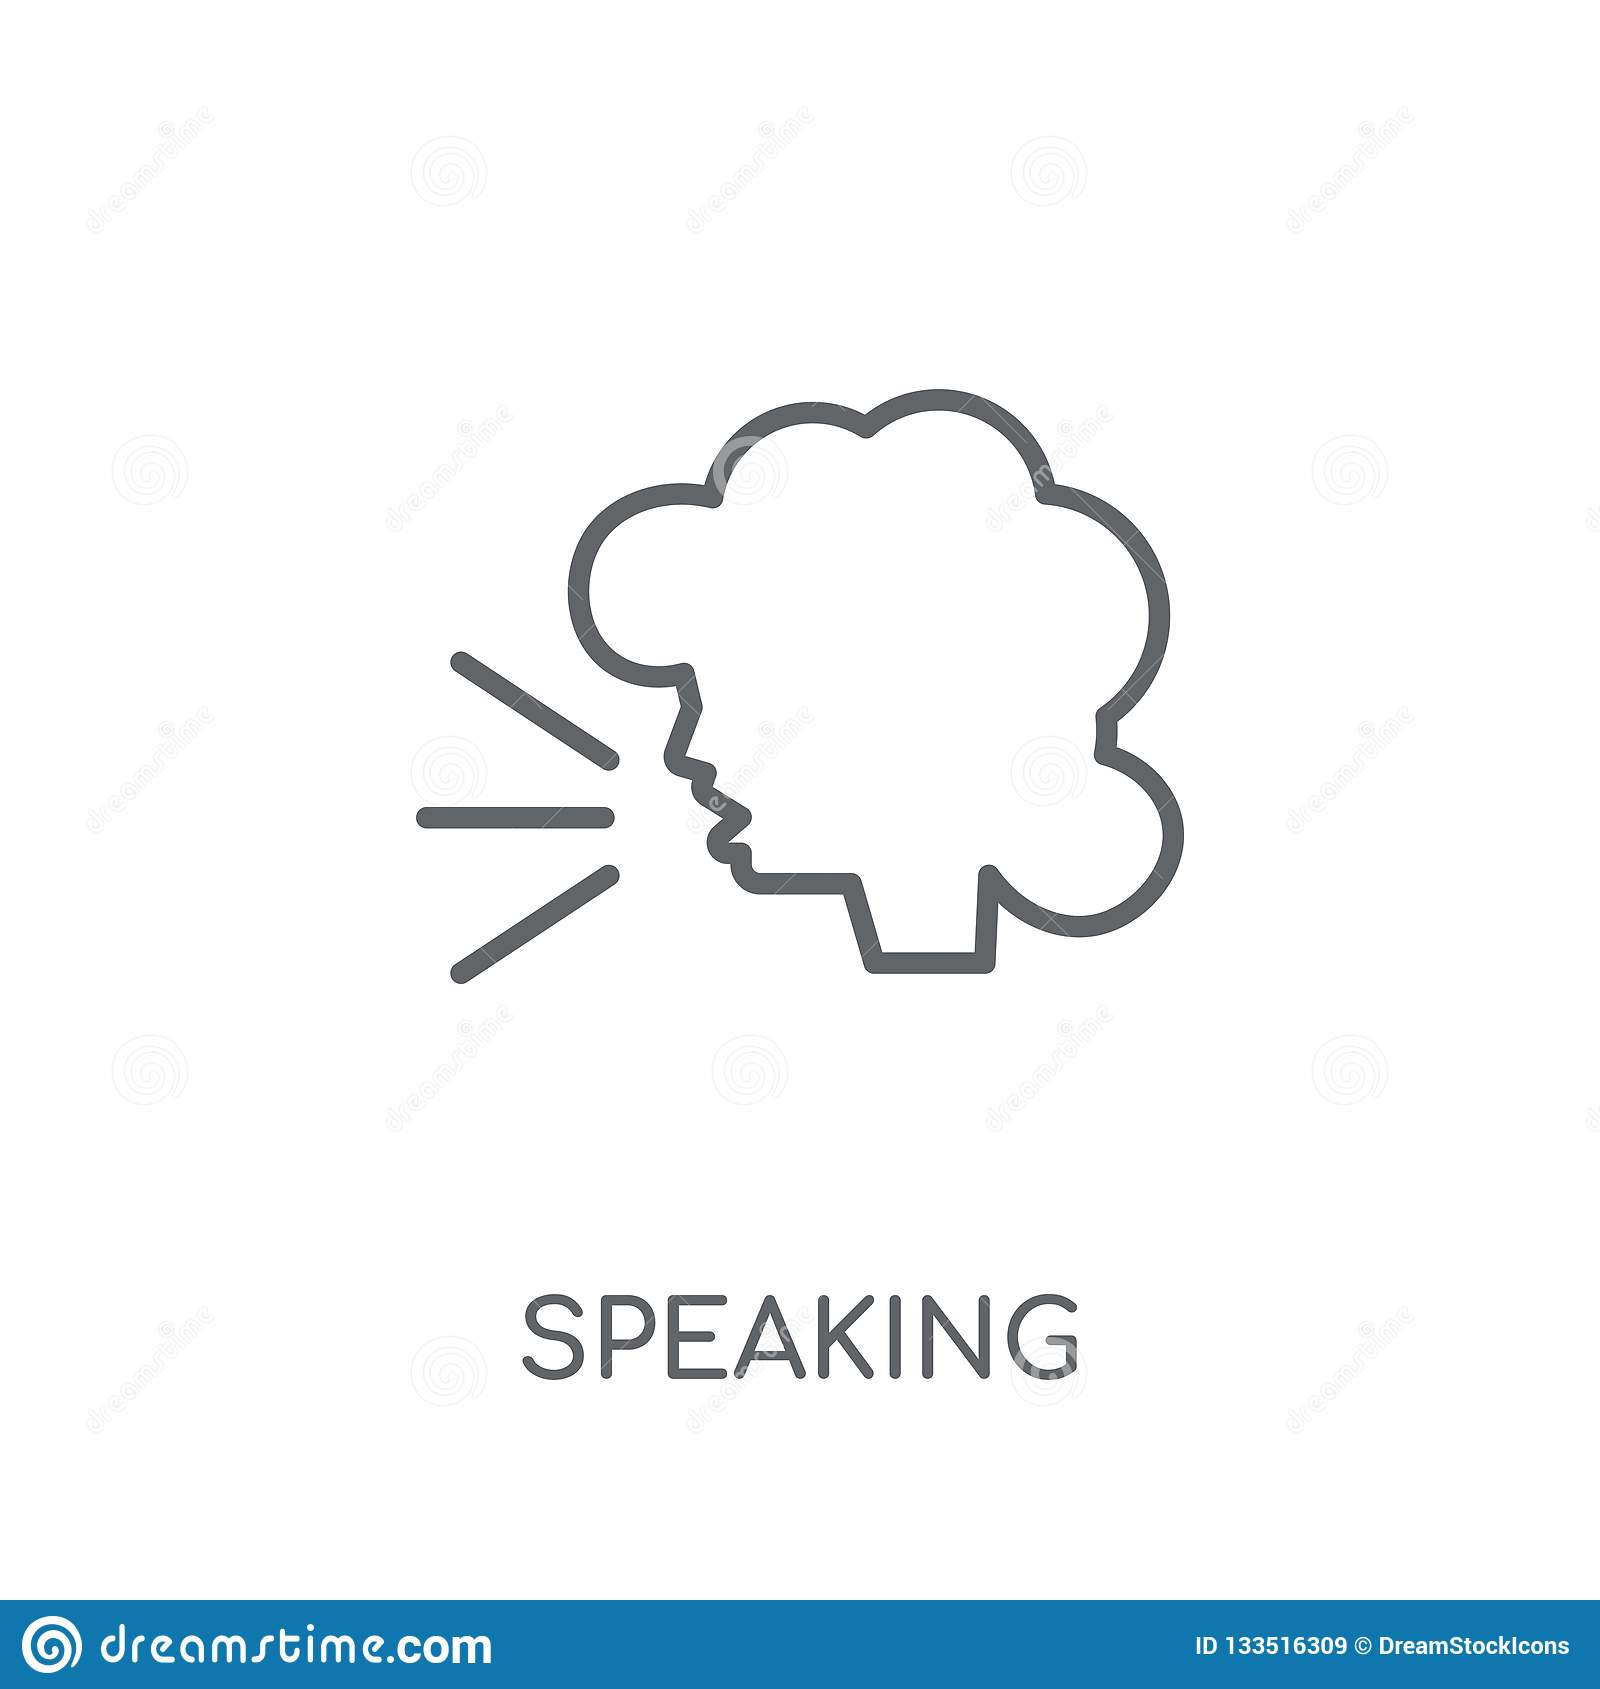 Speaking linear icon. Modern outline Speaking logo concept on wh